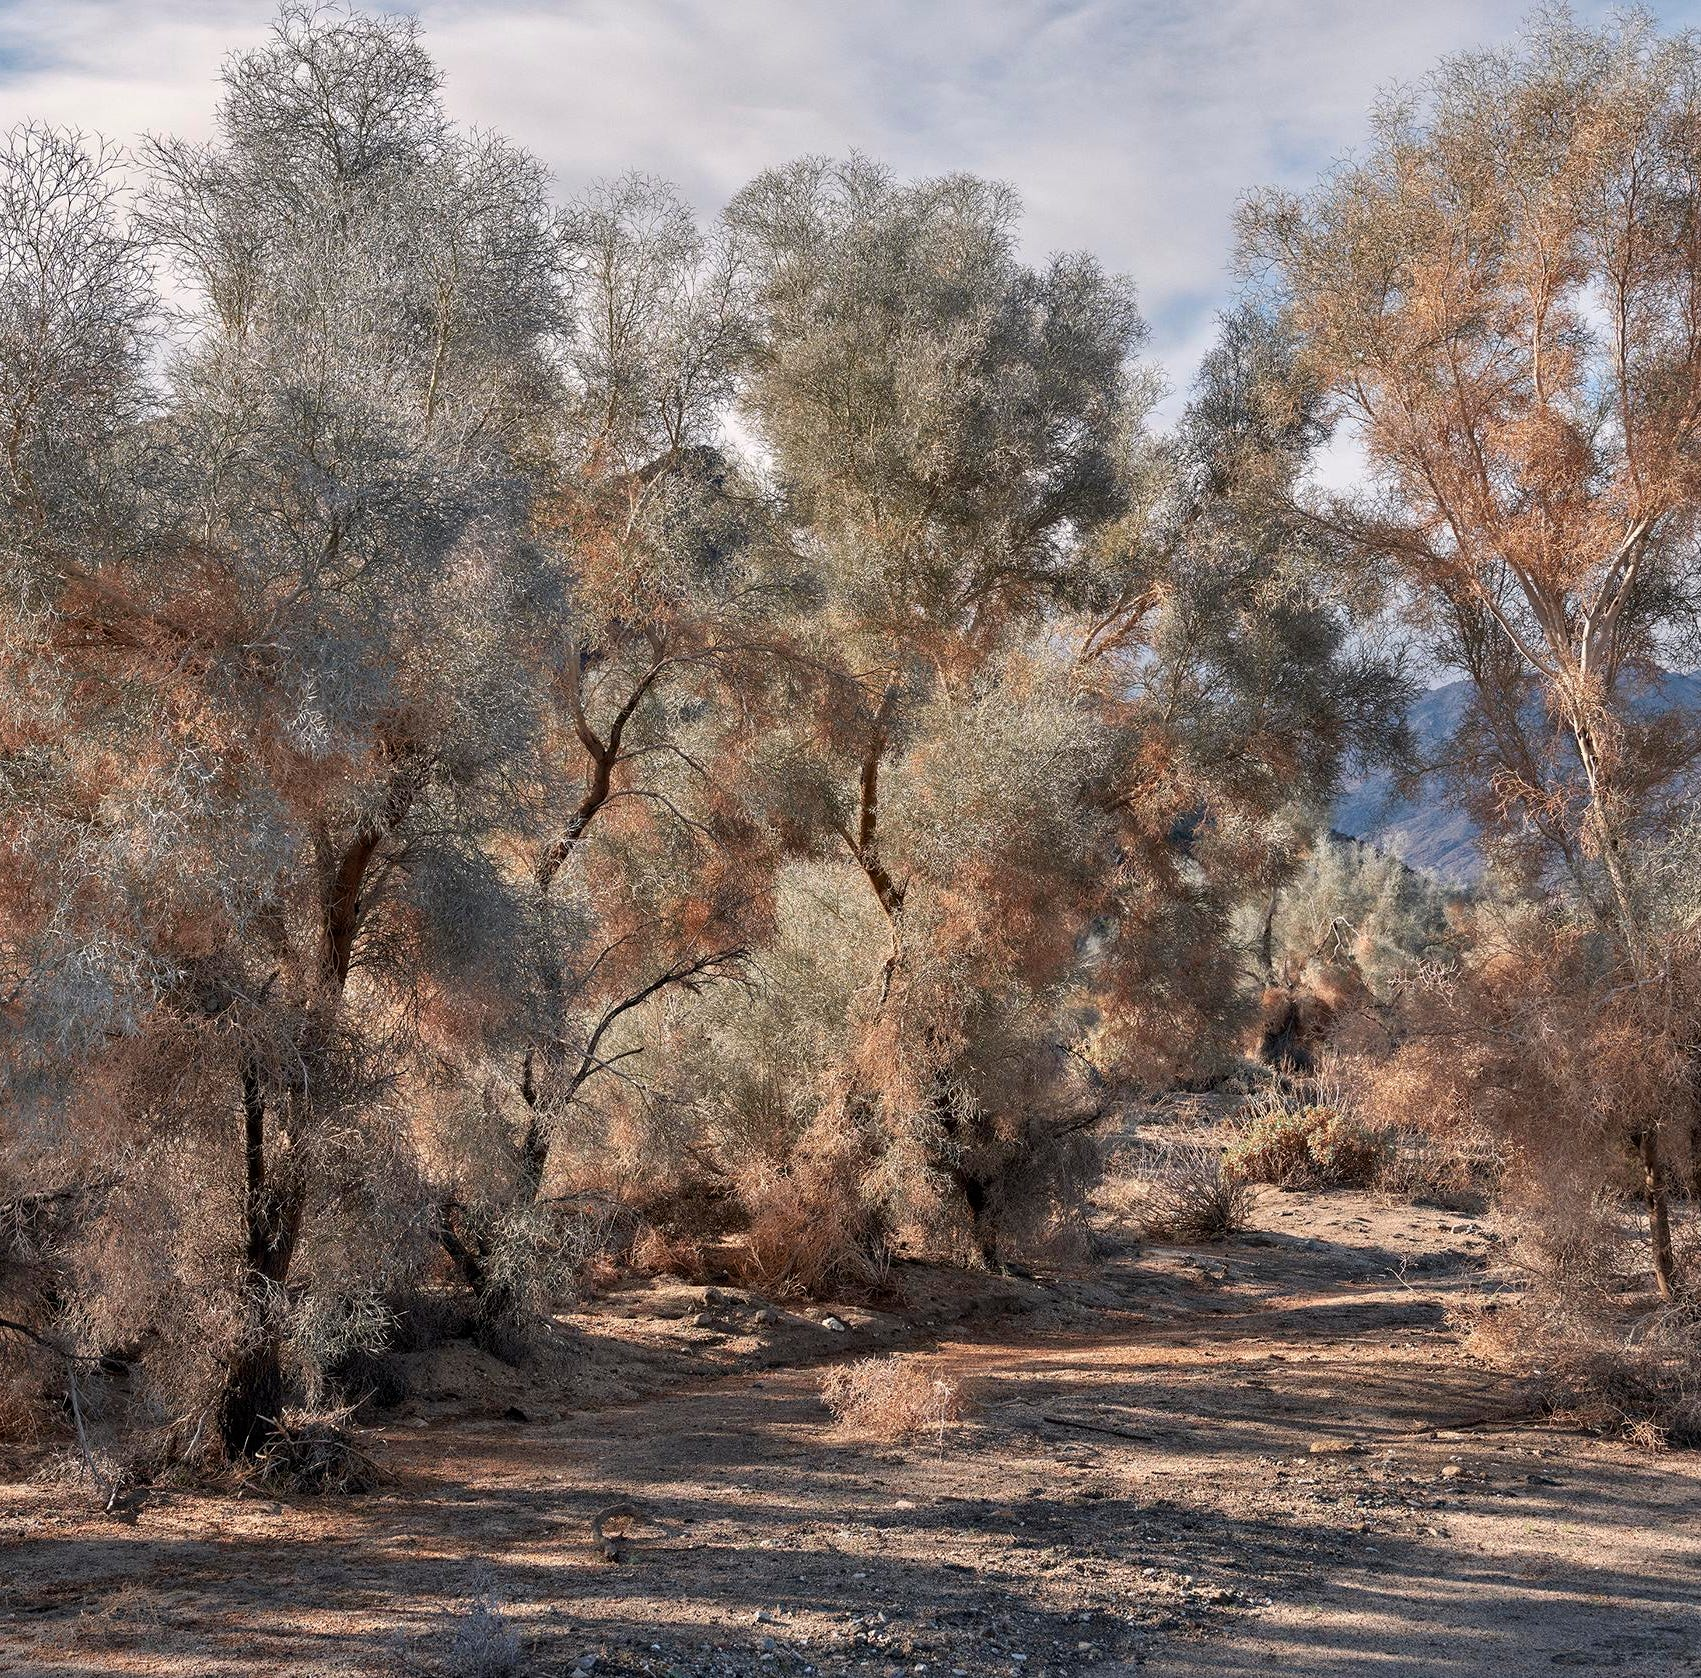 Can't get enough of the super bloom? New exhibition celebrates the desert's smoke tree